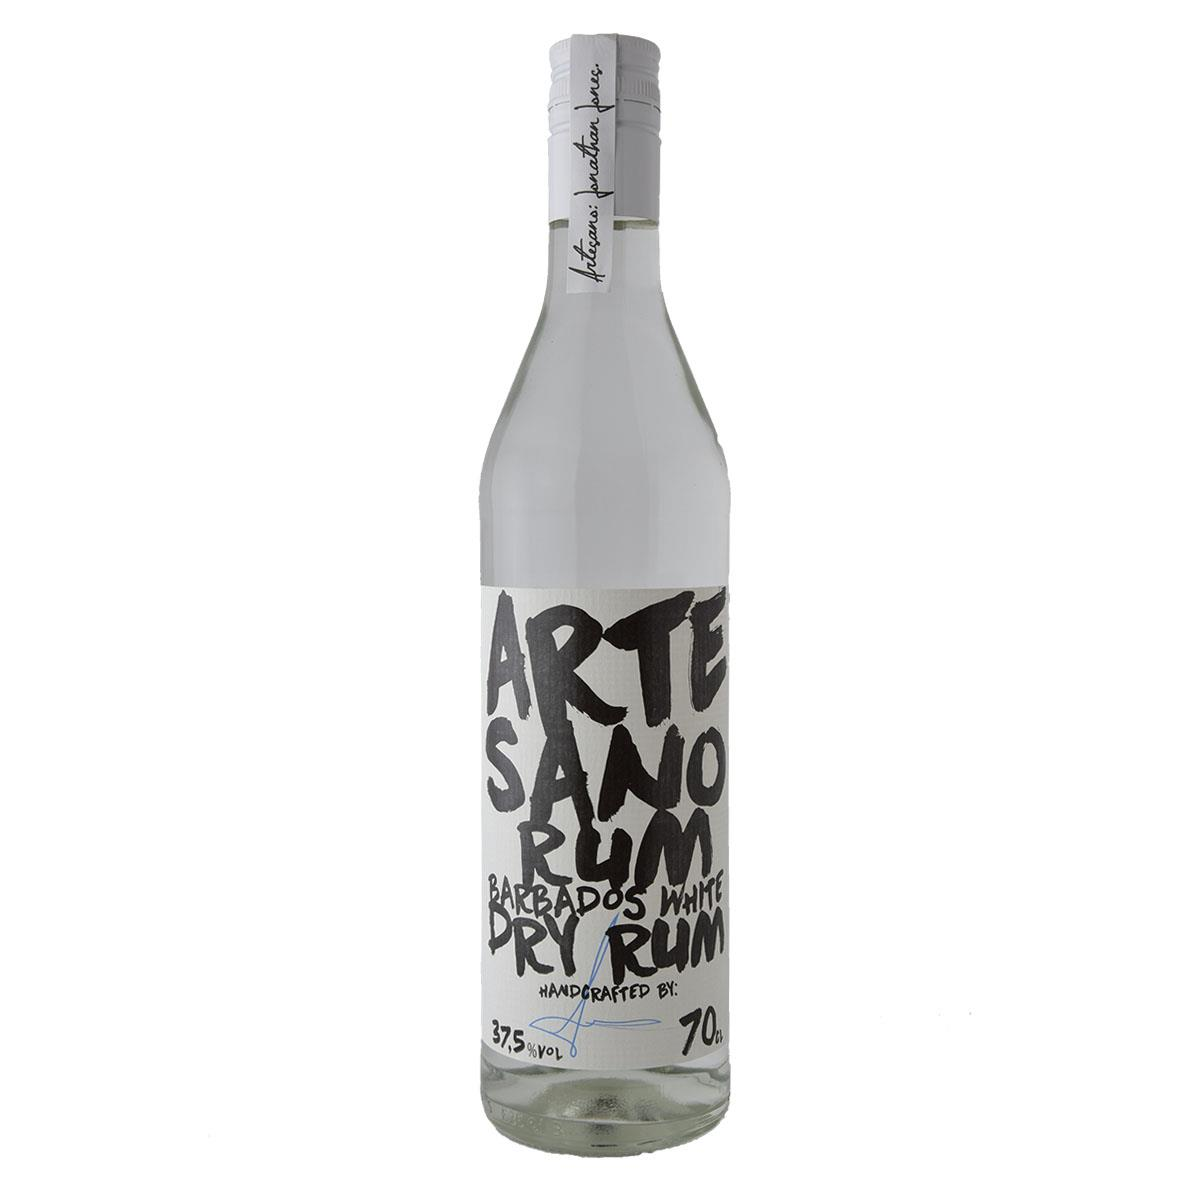 Artesano Barbados White Dry Rum 700ml